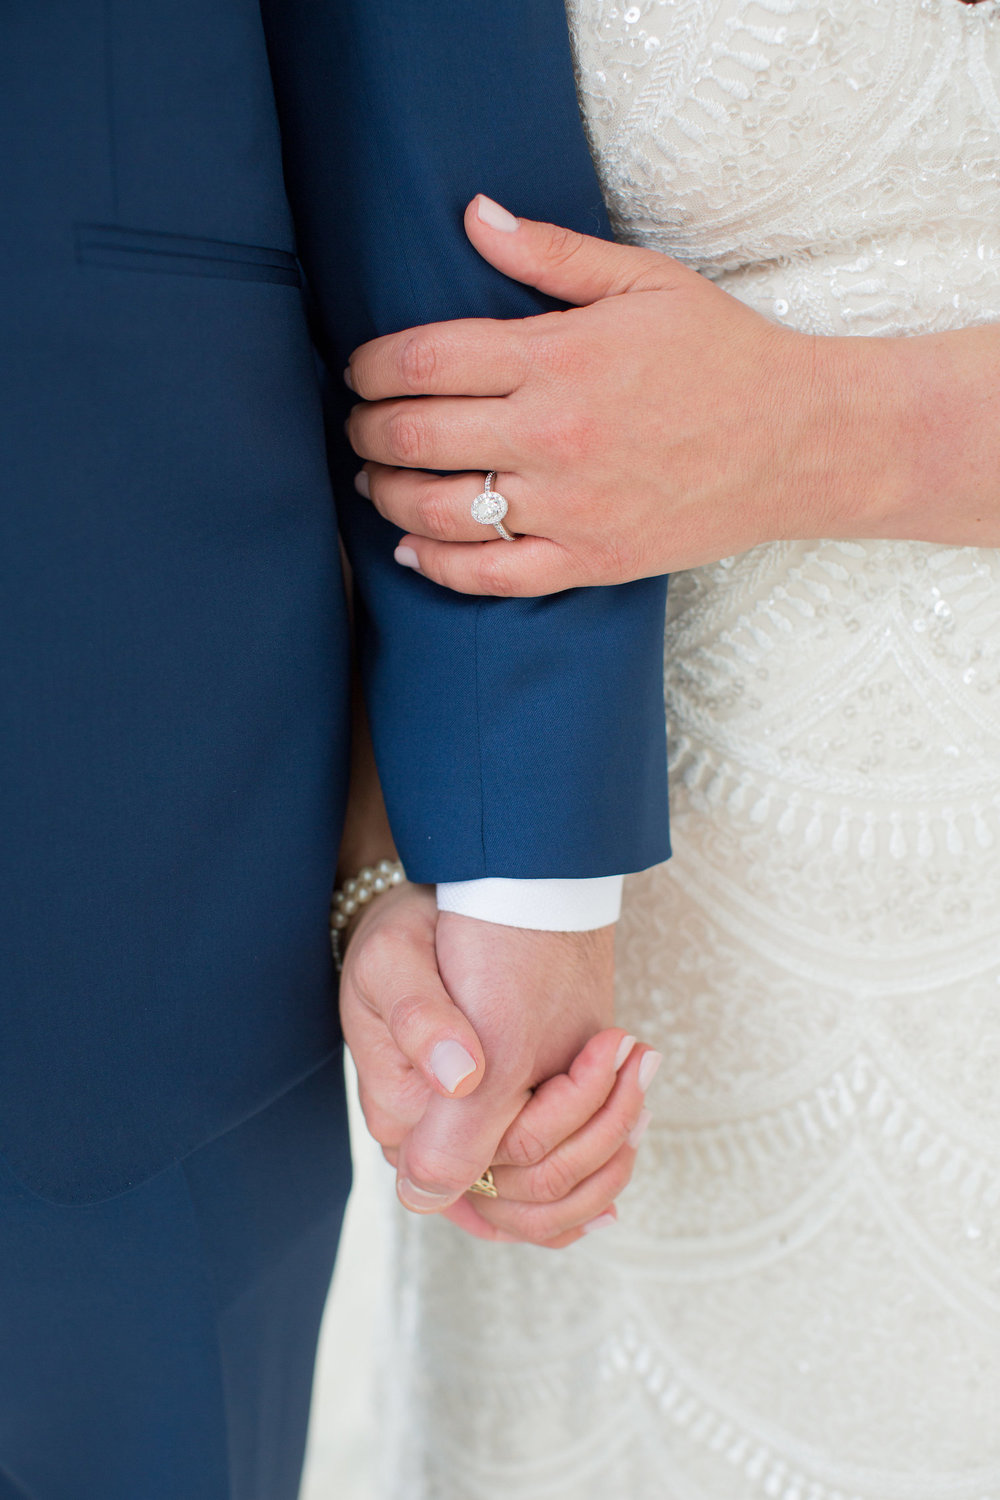 Wedding Ring District Winery Wedding Sincerely Pete Events Olivia Jacob Photography